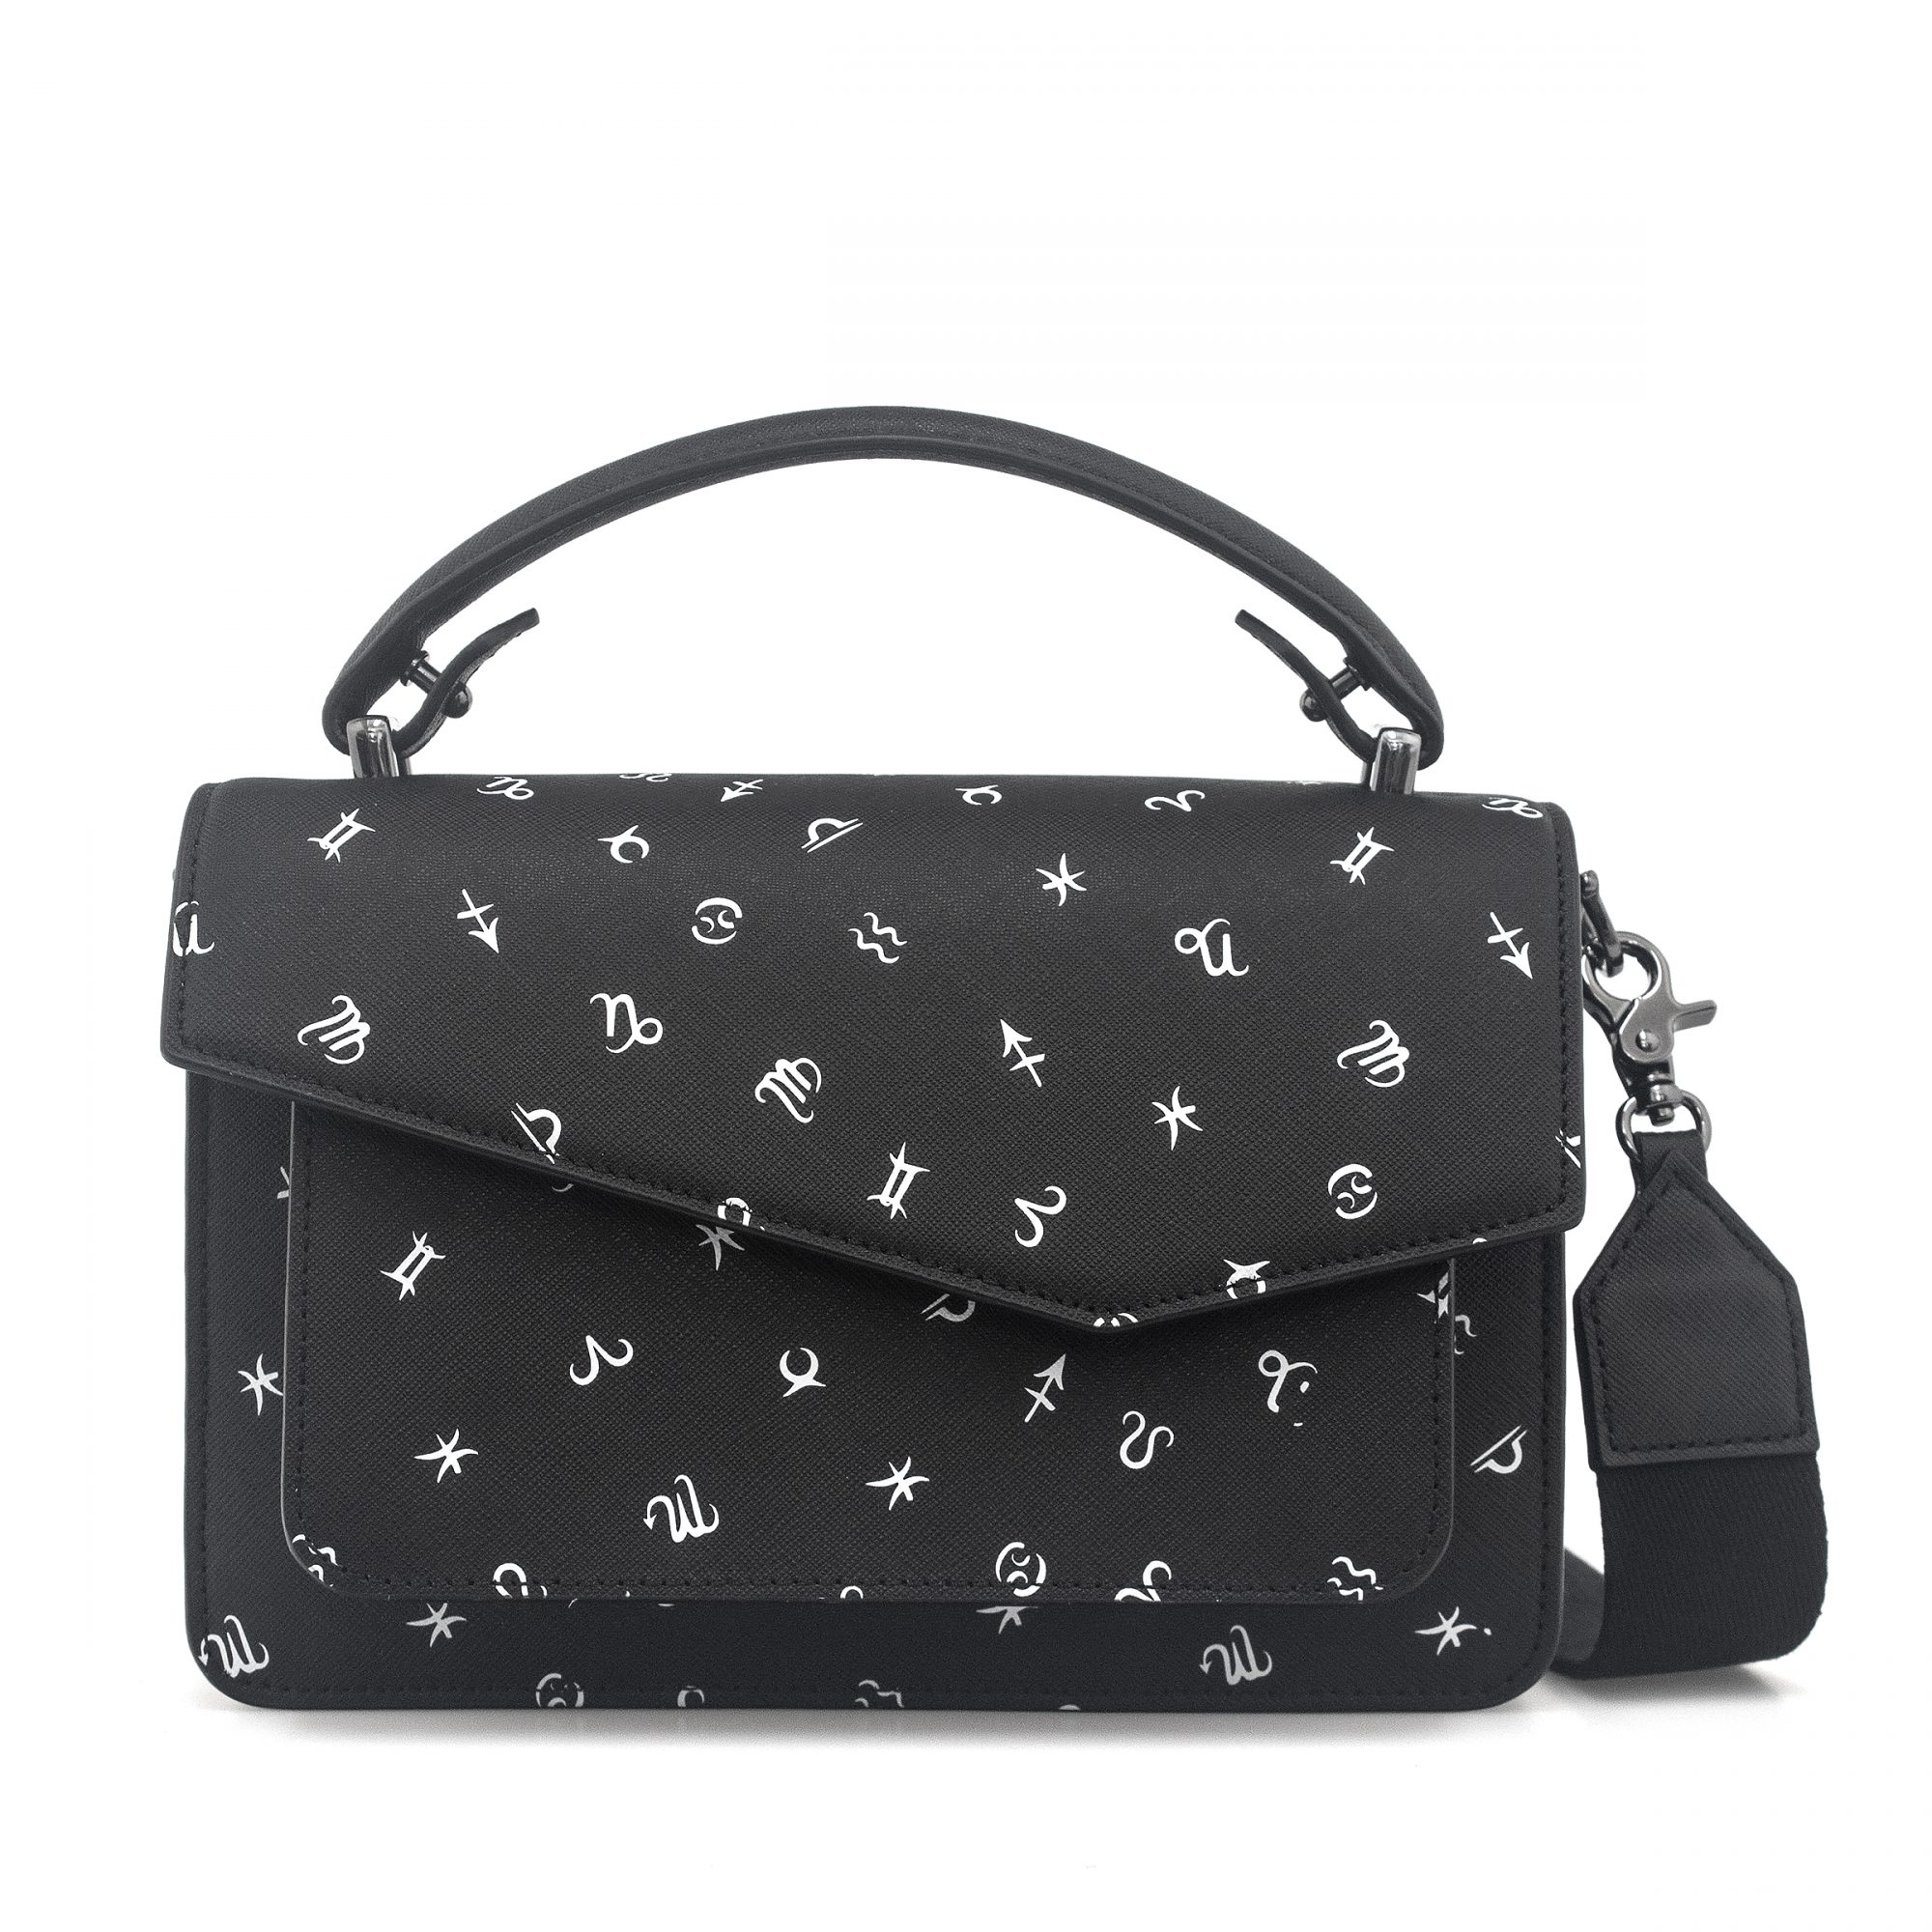 Nicole Miller X Botkier Horoscope Crossbody Bag